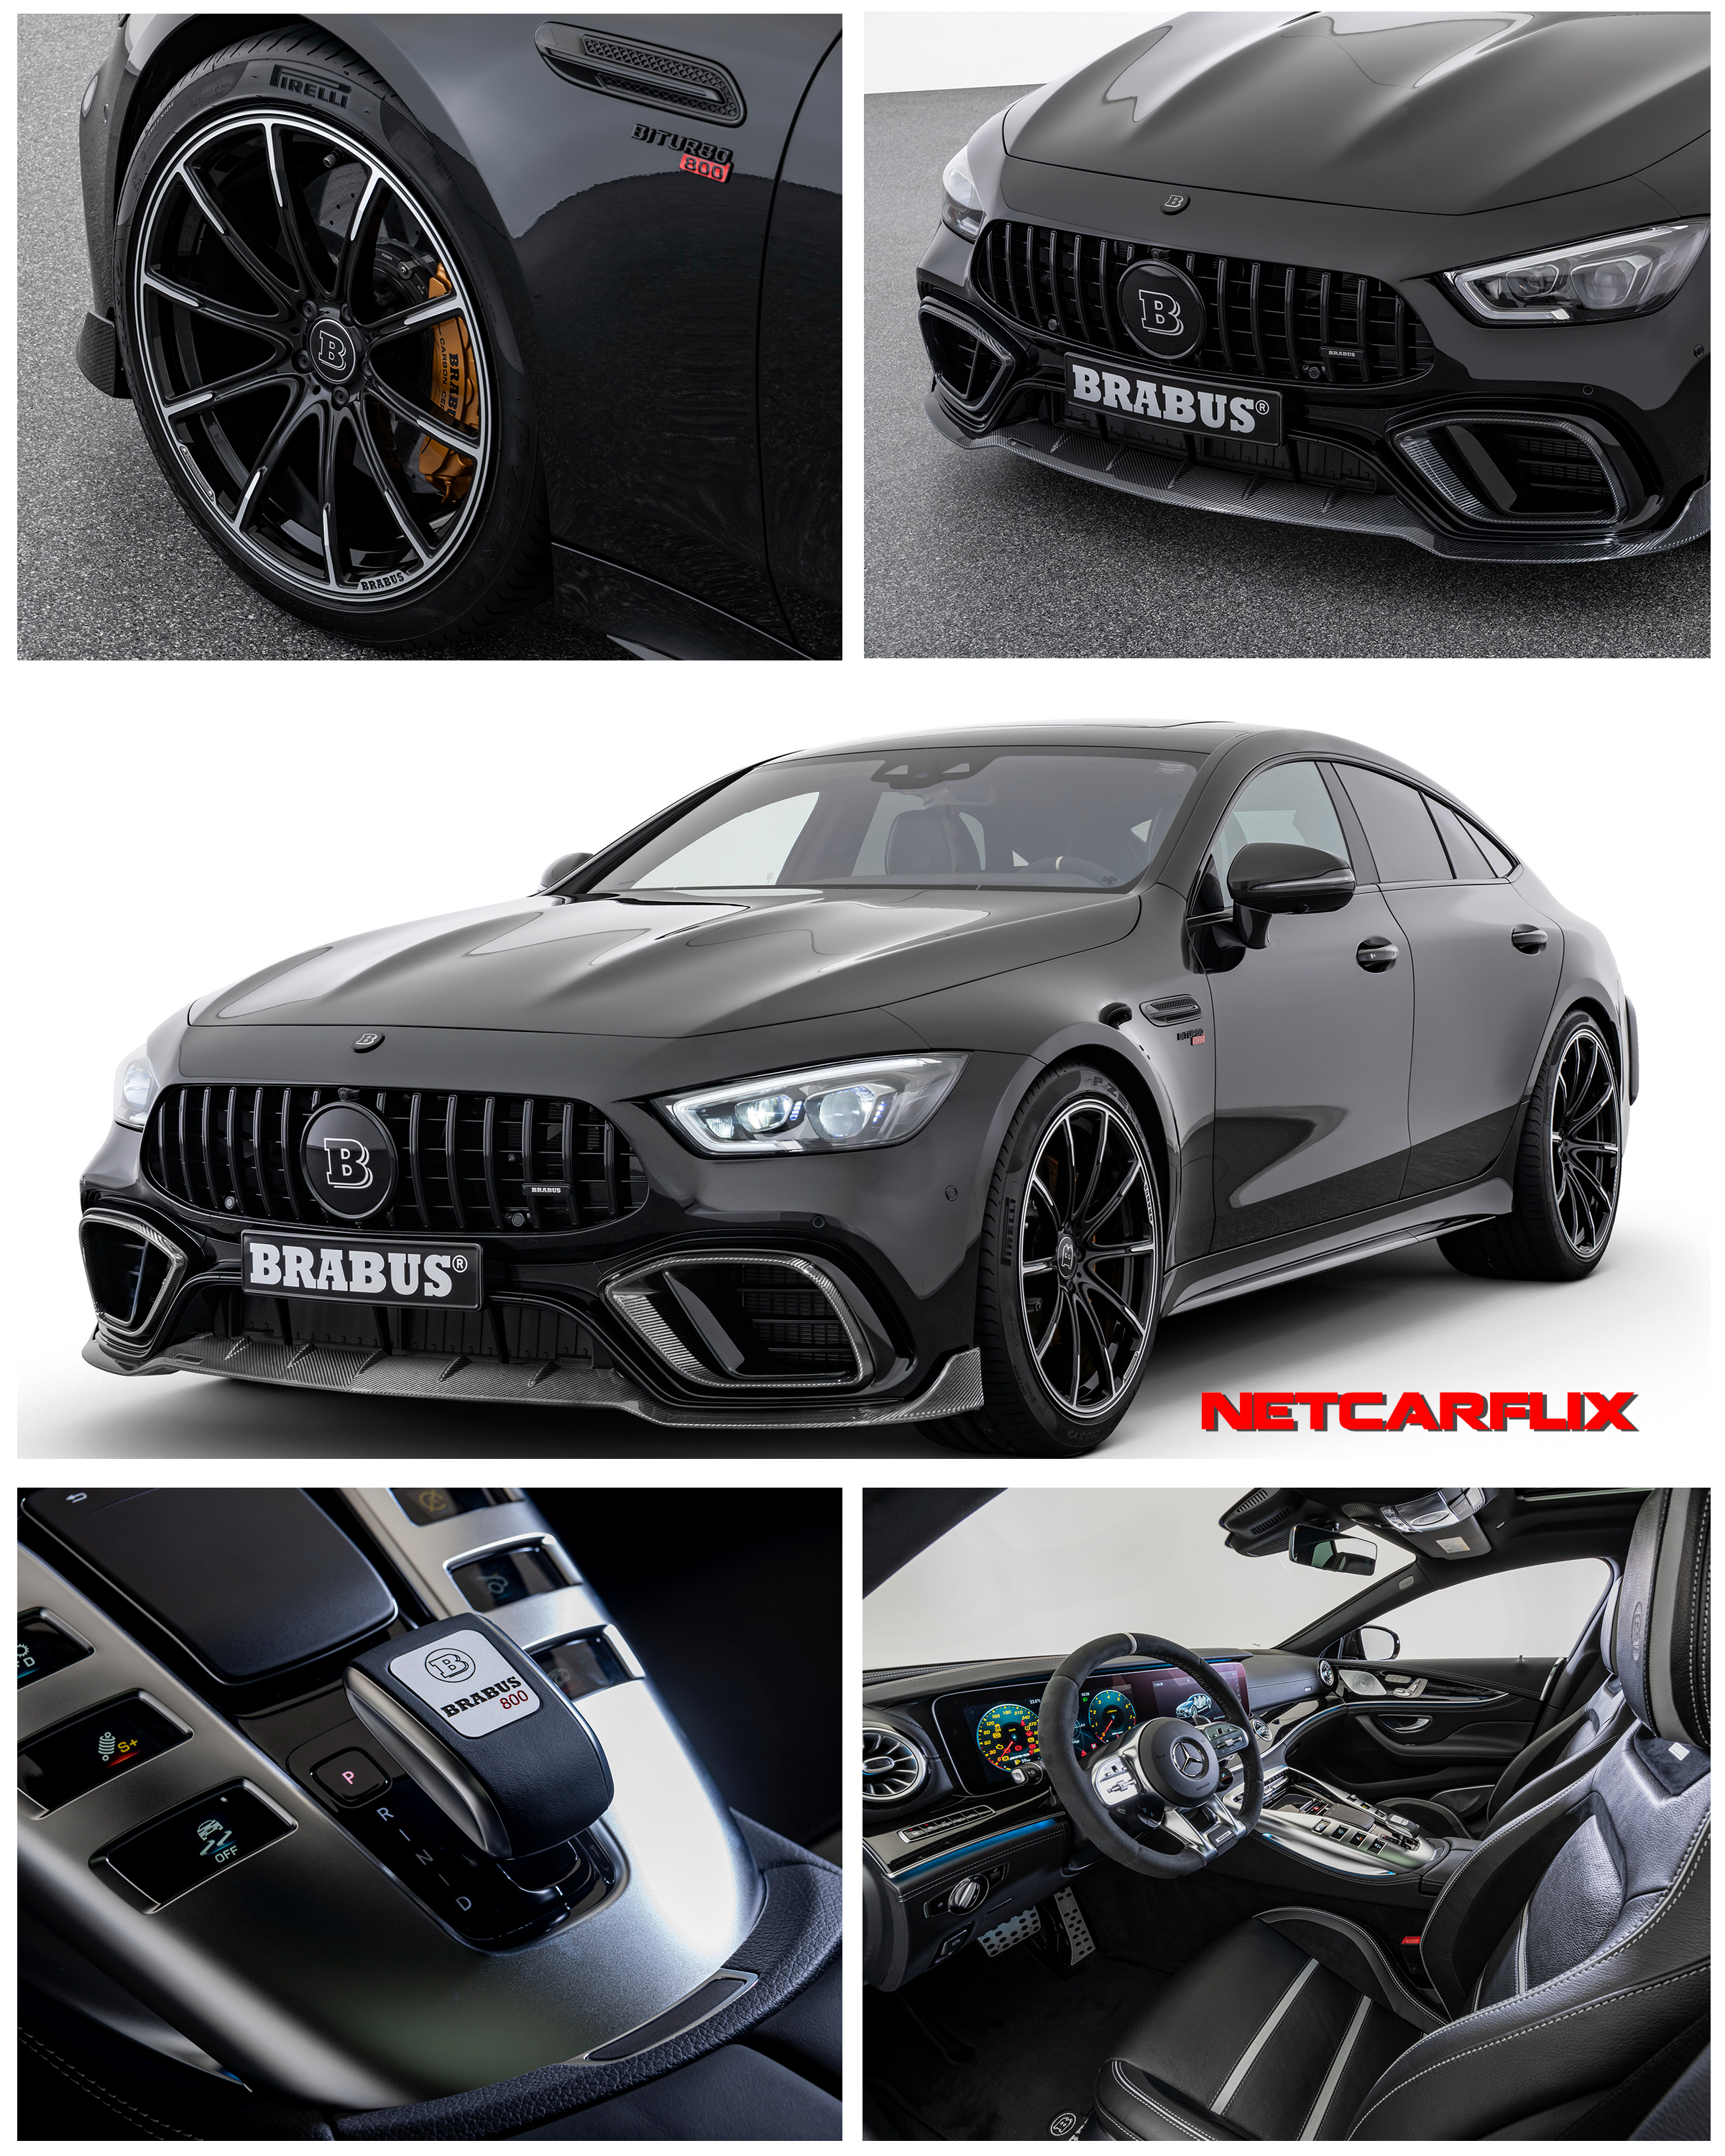 2019 Brabus 800 Based On The Mercedes-AMG GT 63 S -HQ